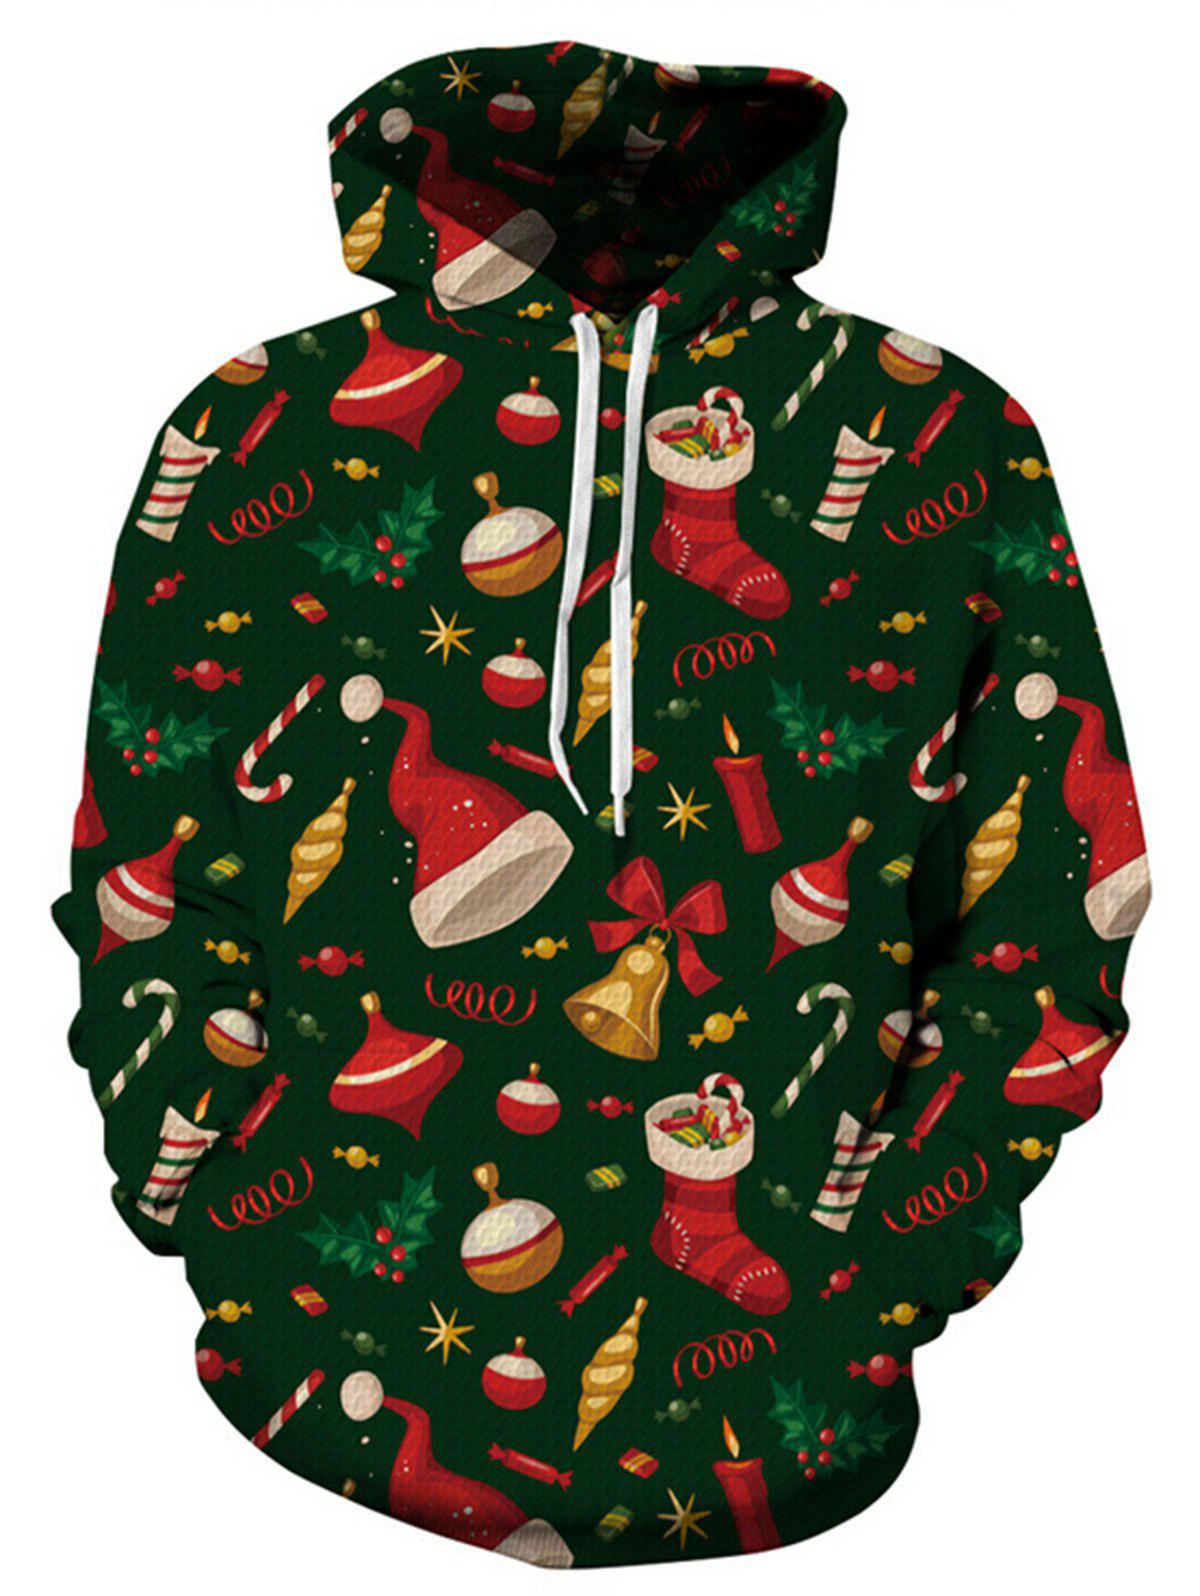 Christmas Decoration Print Plus Size Drawstring HoodieWOMEN<br><br>Size: 3XL; Color: BLACKISH GREEN; Material: Polyester,Spandex; Shirt Length: Regular; Sleeve Length: Full; Style: Fashion; Pattern Style: Print; Elasticity: Elastic; Season: Fall,Spring,Winter; Weight: 0.5000kg; Package Contents: 1 x Hoodie;